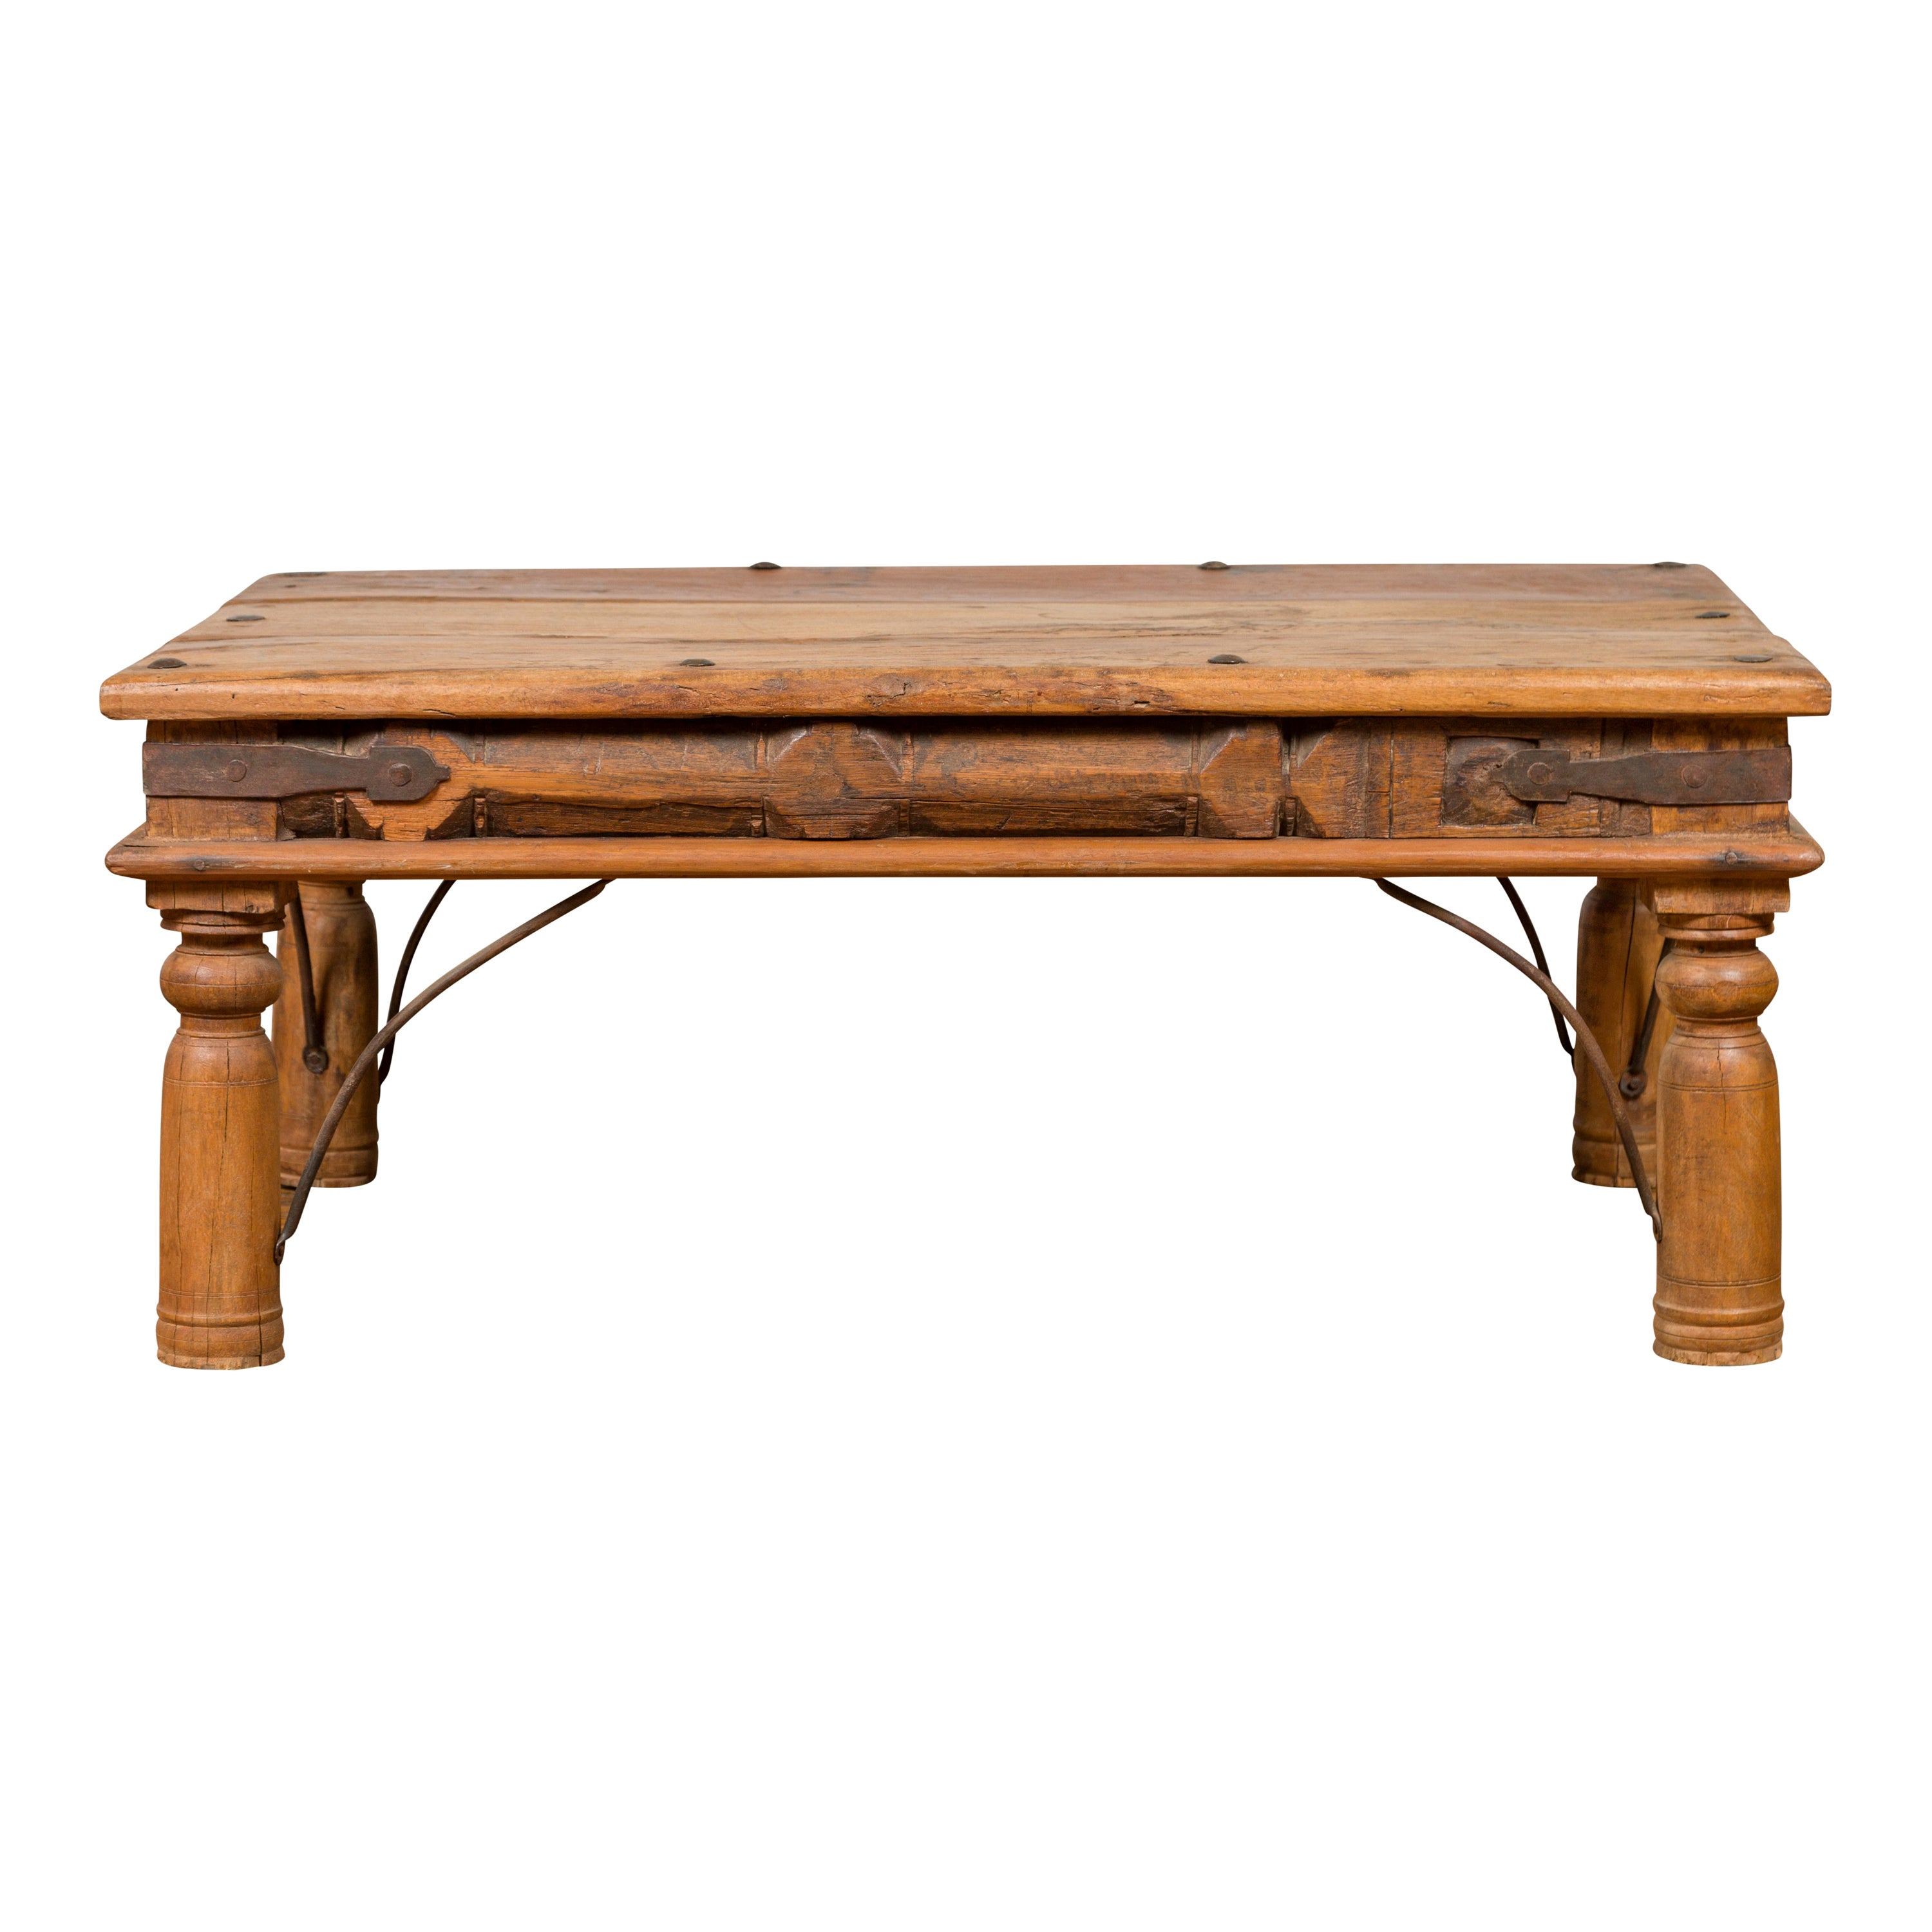 Rustic Indian Sheesham Wood Coffee Table with Nailhead Design and Baluster Legs